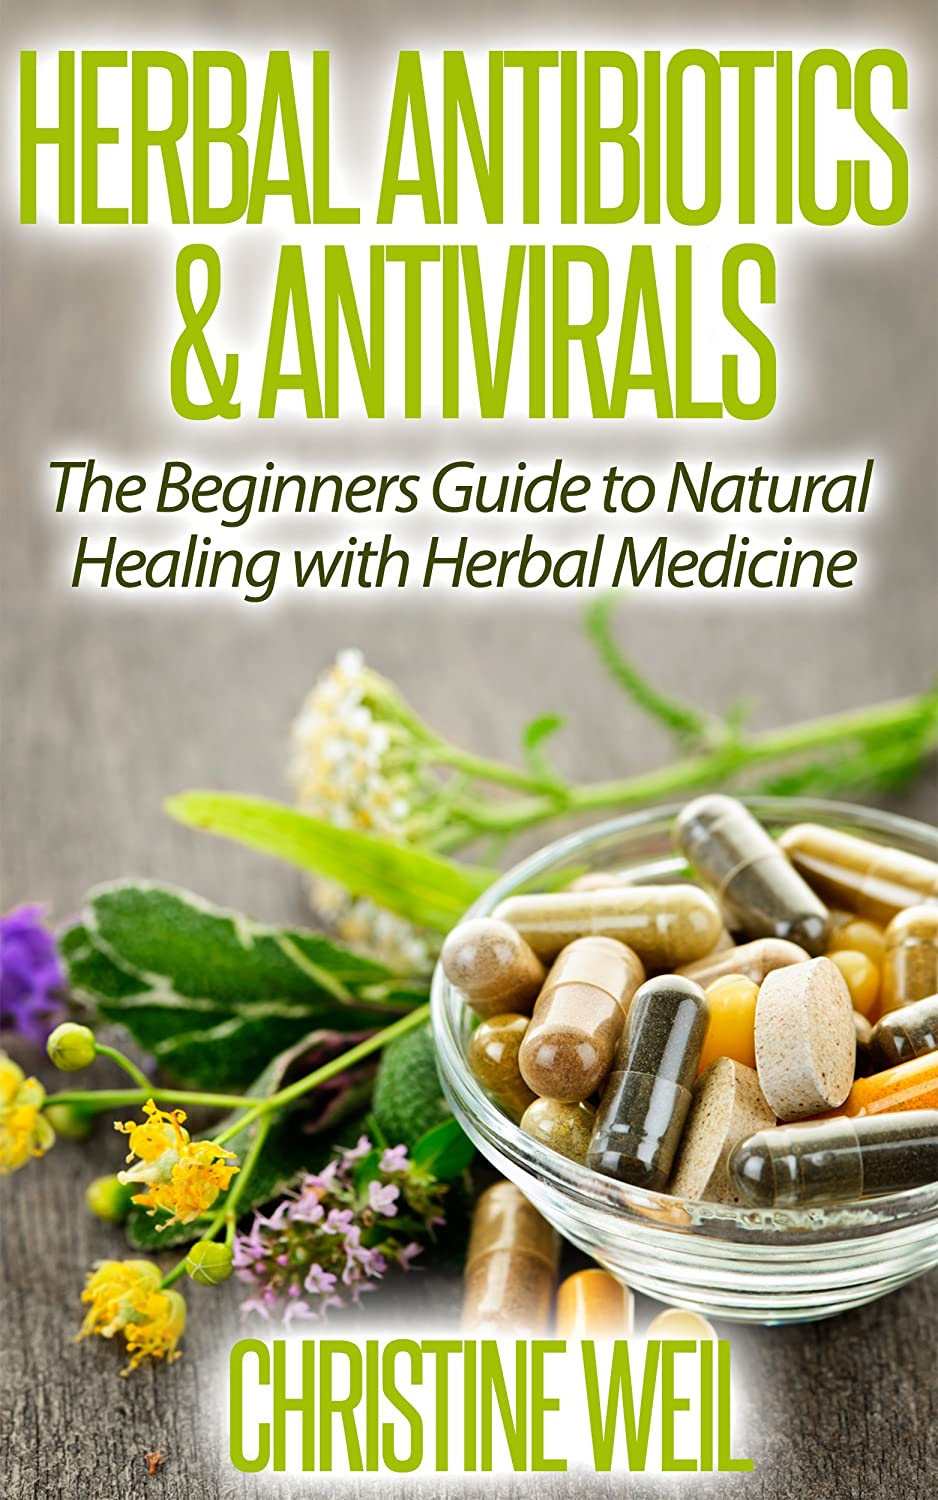 http://www.amazon.com/Herbal-Antibiotics-Antivirals-Natural-Medicine-ebook/dp/B00J2F1QDO/ref=as_sl_pc_ss_til?tag=lettfromahome-20&linkCode=w01&linkId=BWSGNDNKNHZWKGV3&creativeASIN=B00J2F1QDO